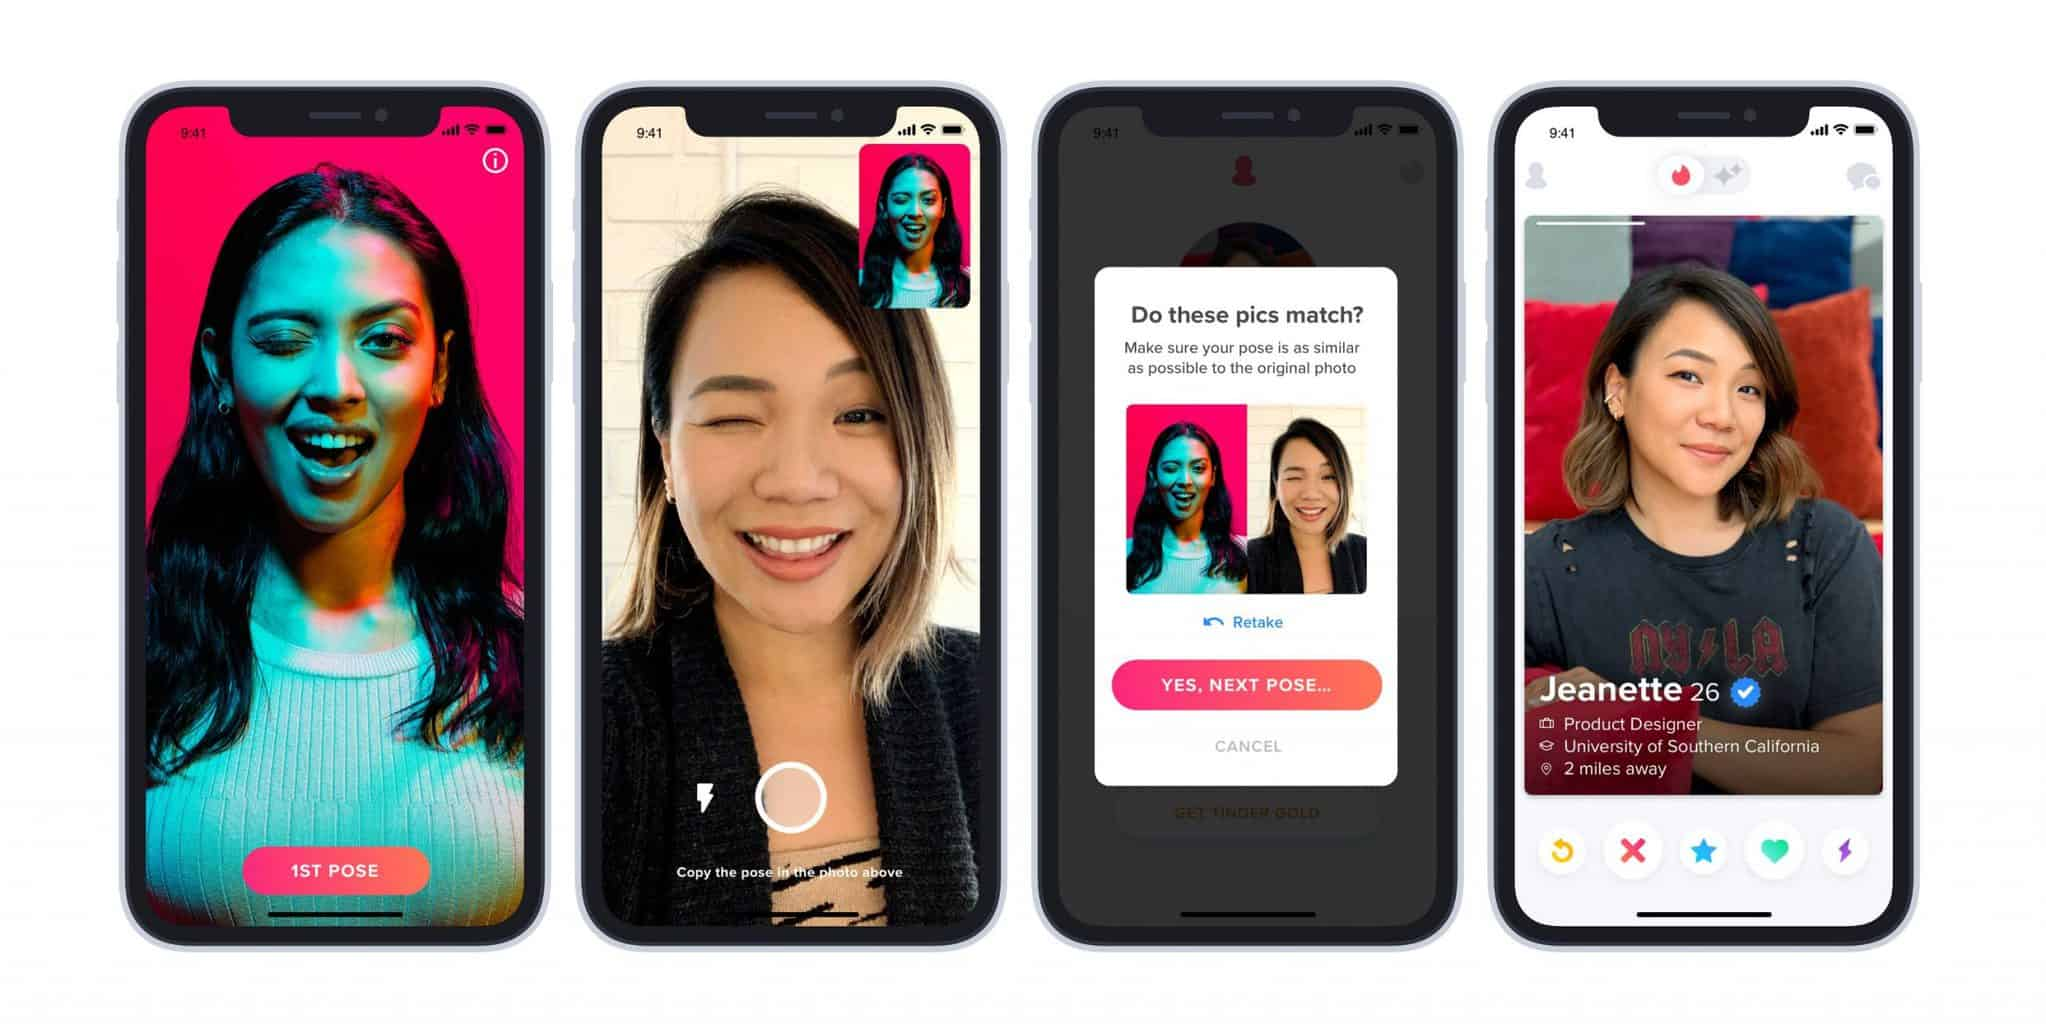 Tinder rolls out new features for safeguarding its community